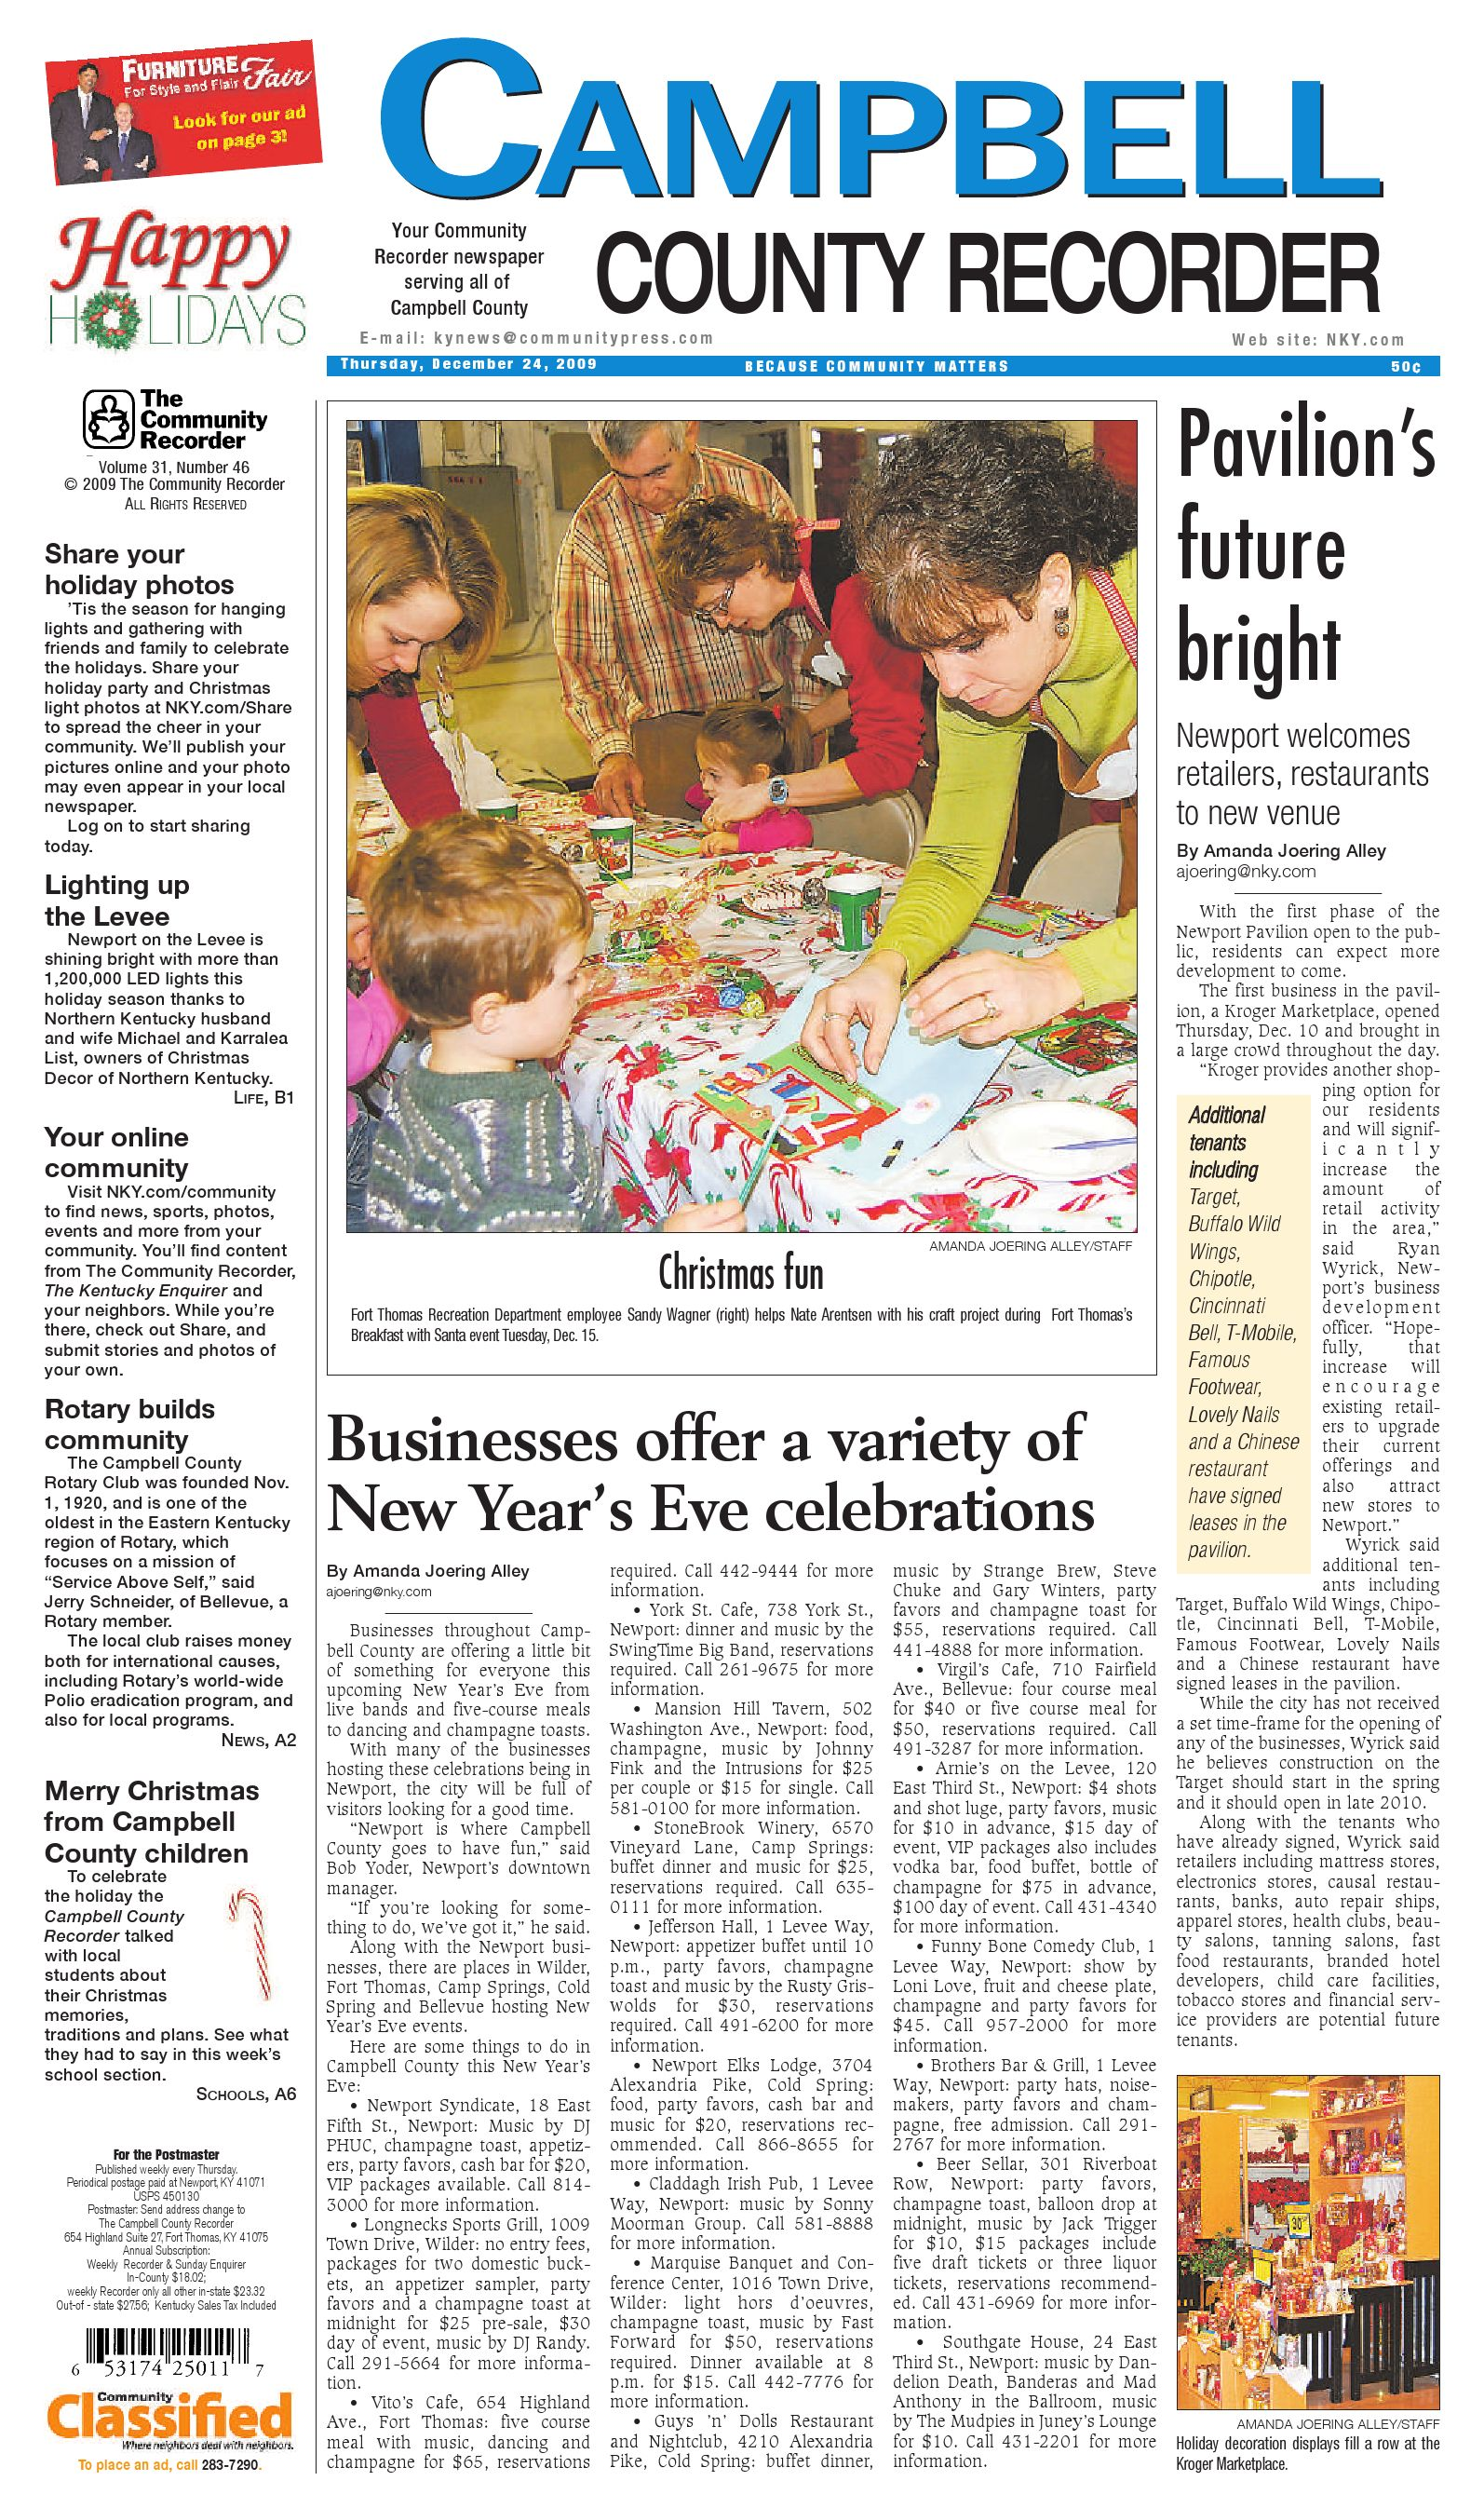 campbell-county-recorder-122409 by Enquirer Media - issuu